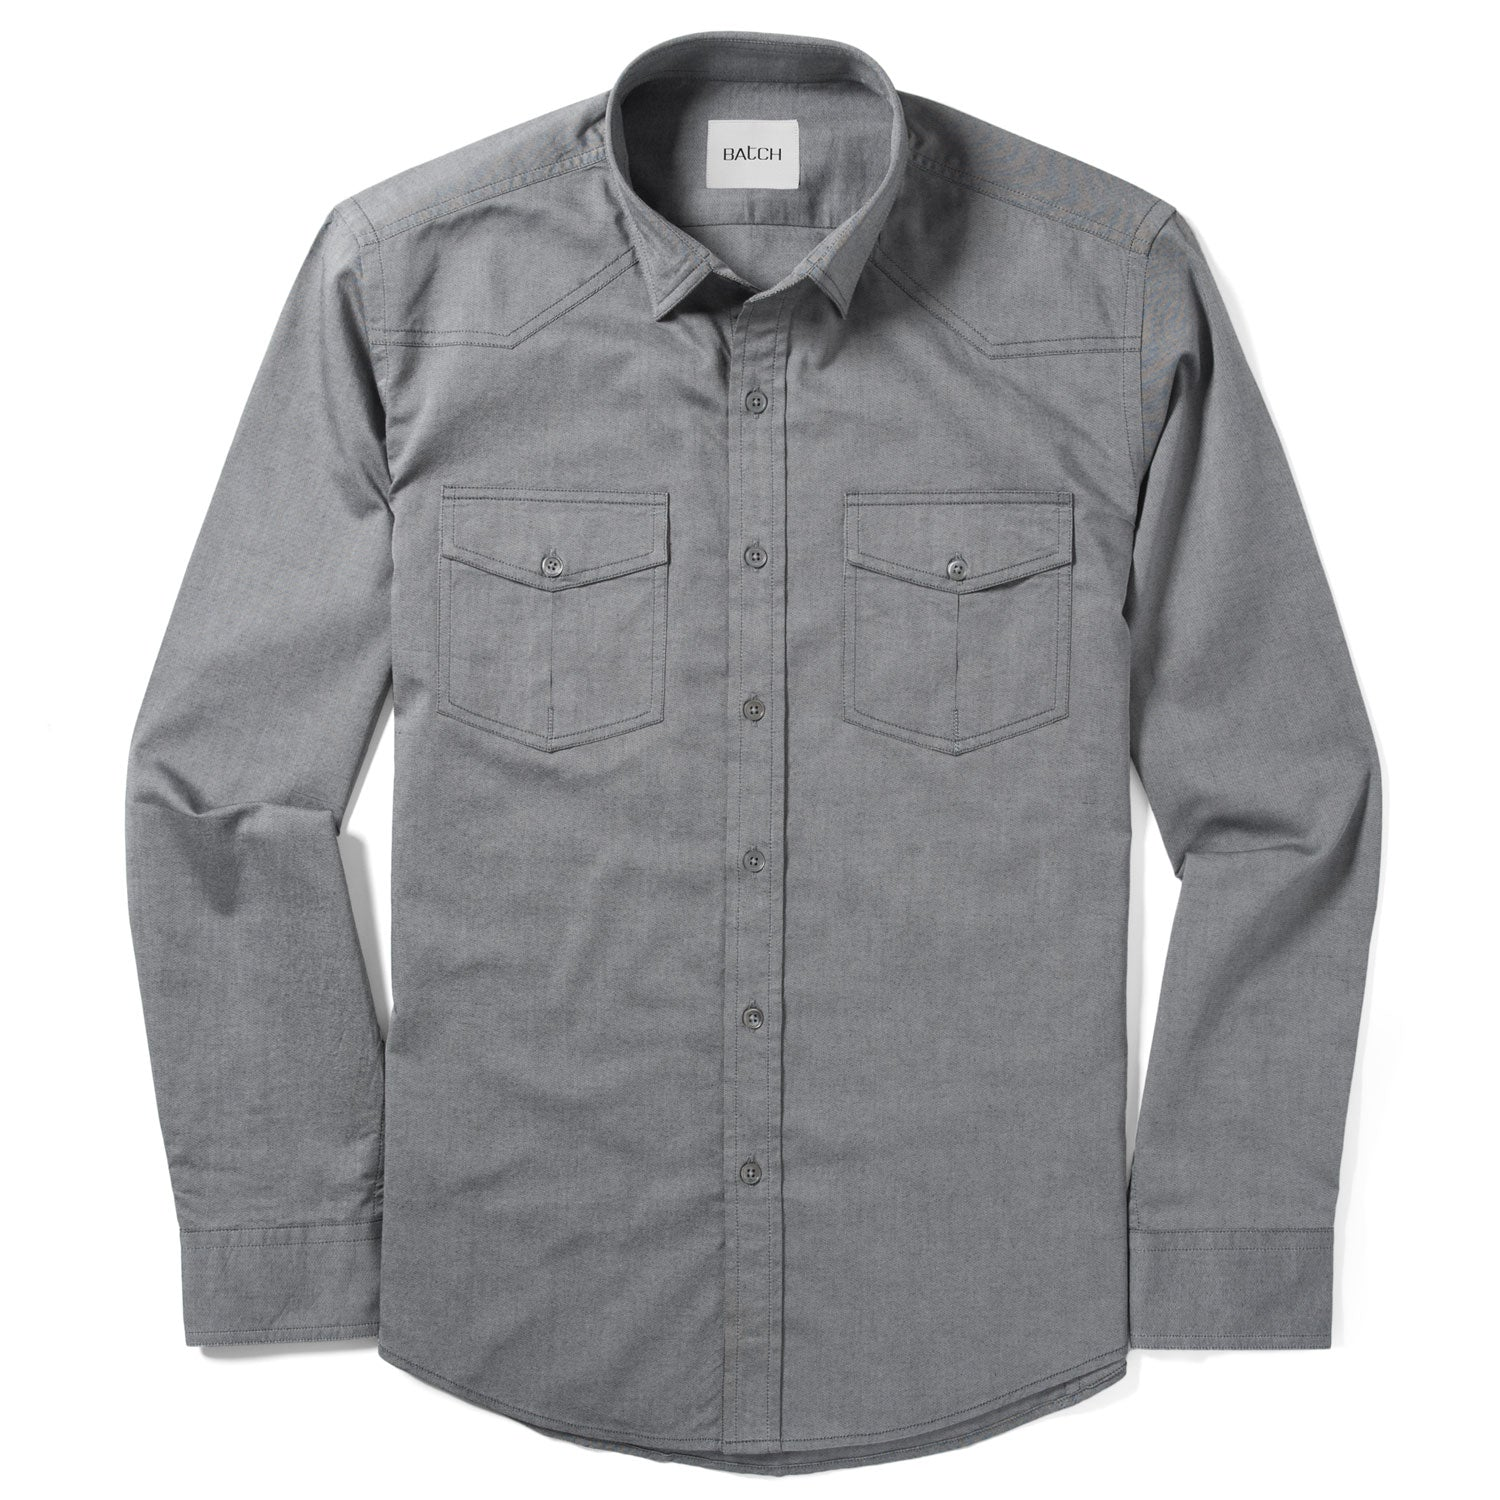 Maker Shirt – Smoke Gray Cotton Oxford